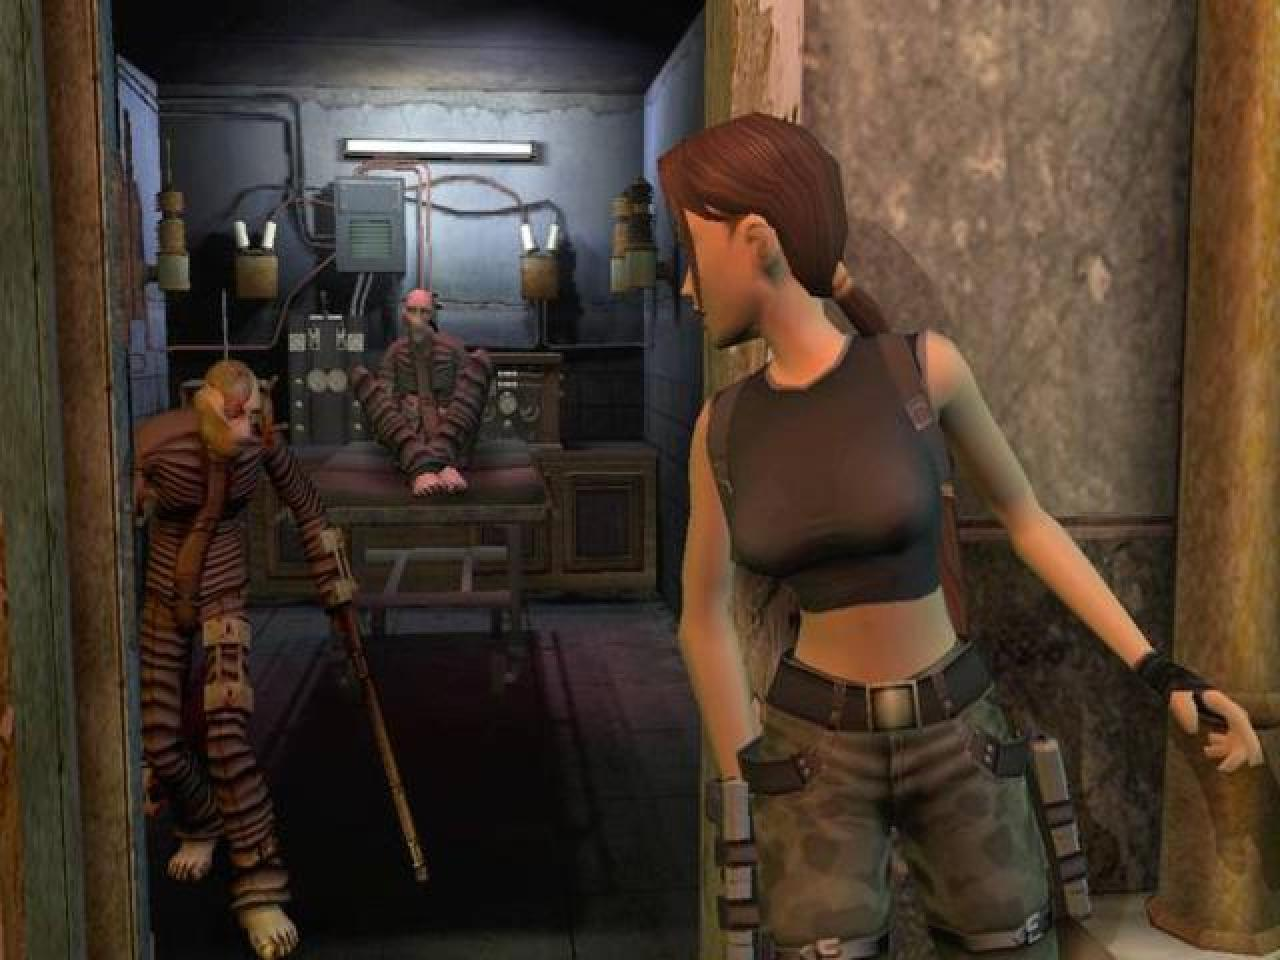 3d lara croft in trouble nude picture